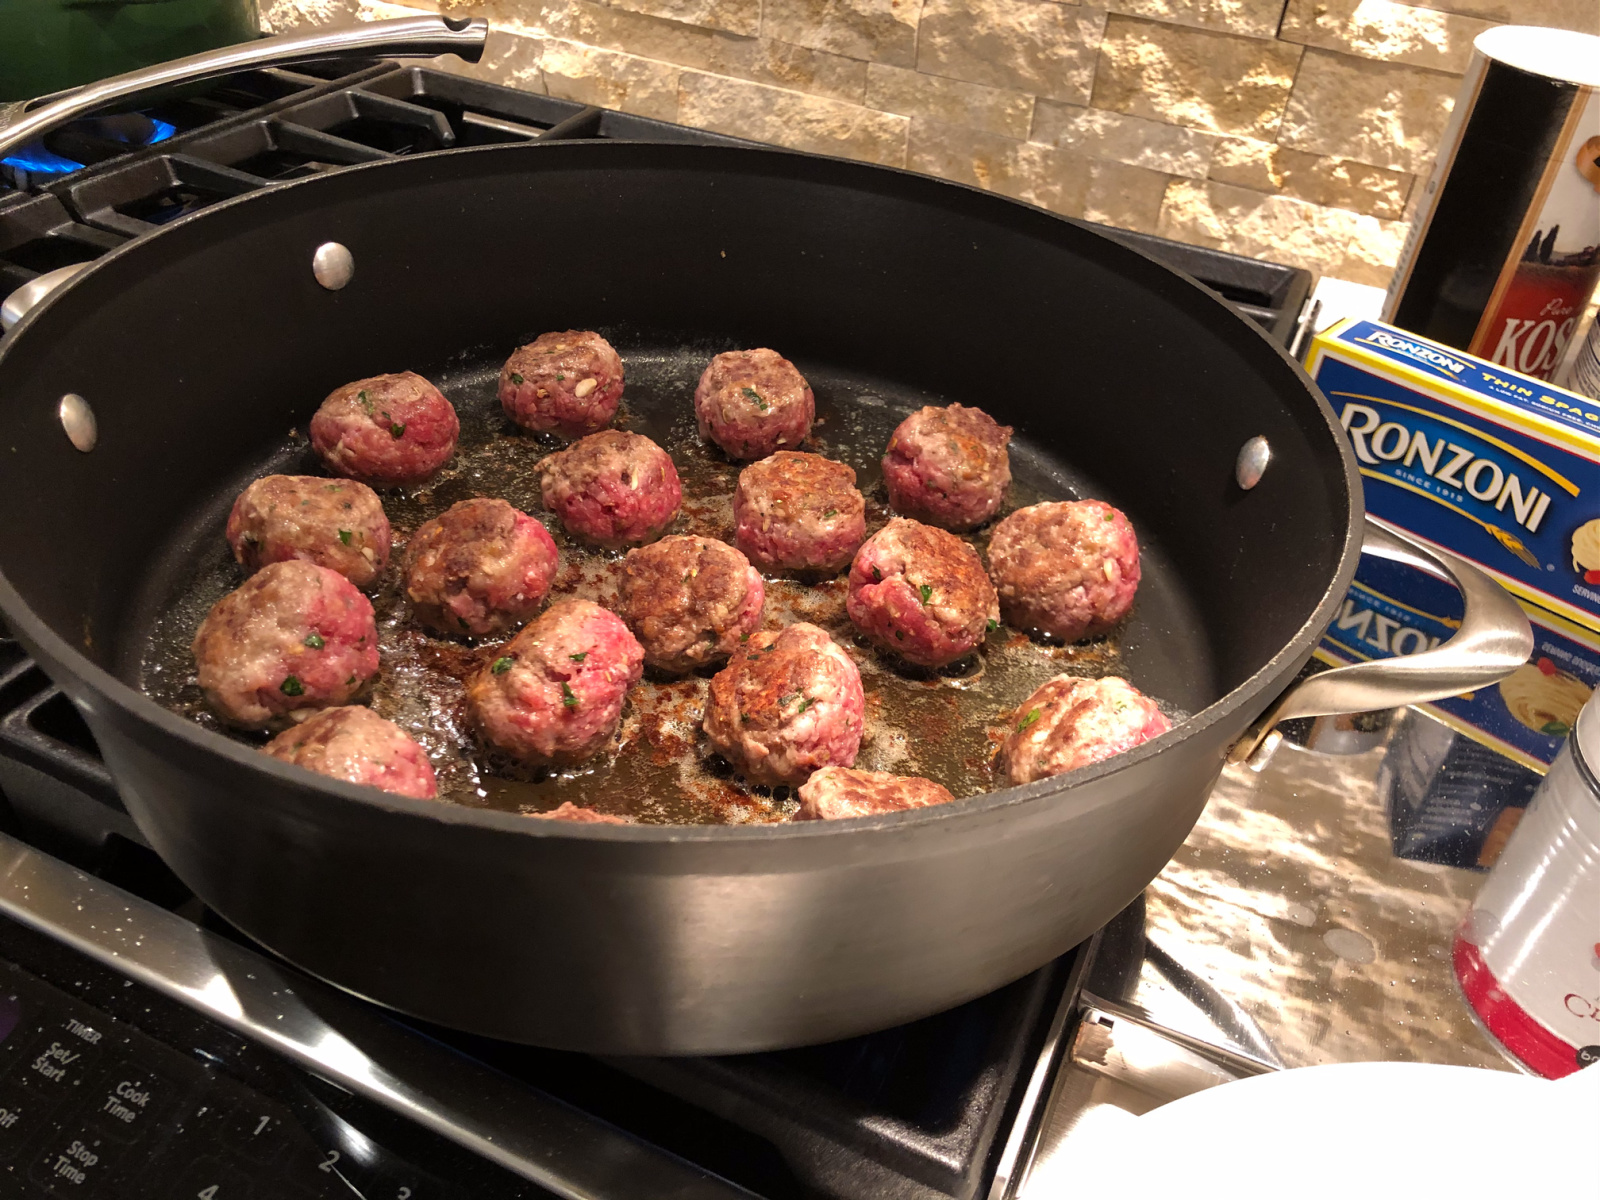 One-Pot Thin Spaghetti And Meatballs - Amazing Recipe To Go With The Ronzoni BOGO Sale! on I Heart Publix 4